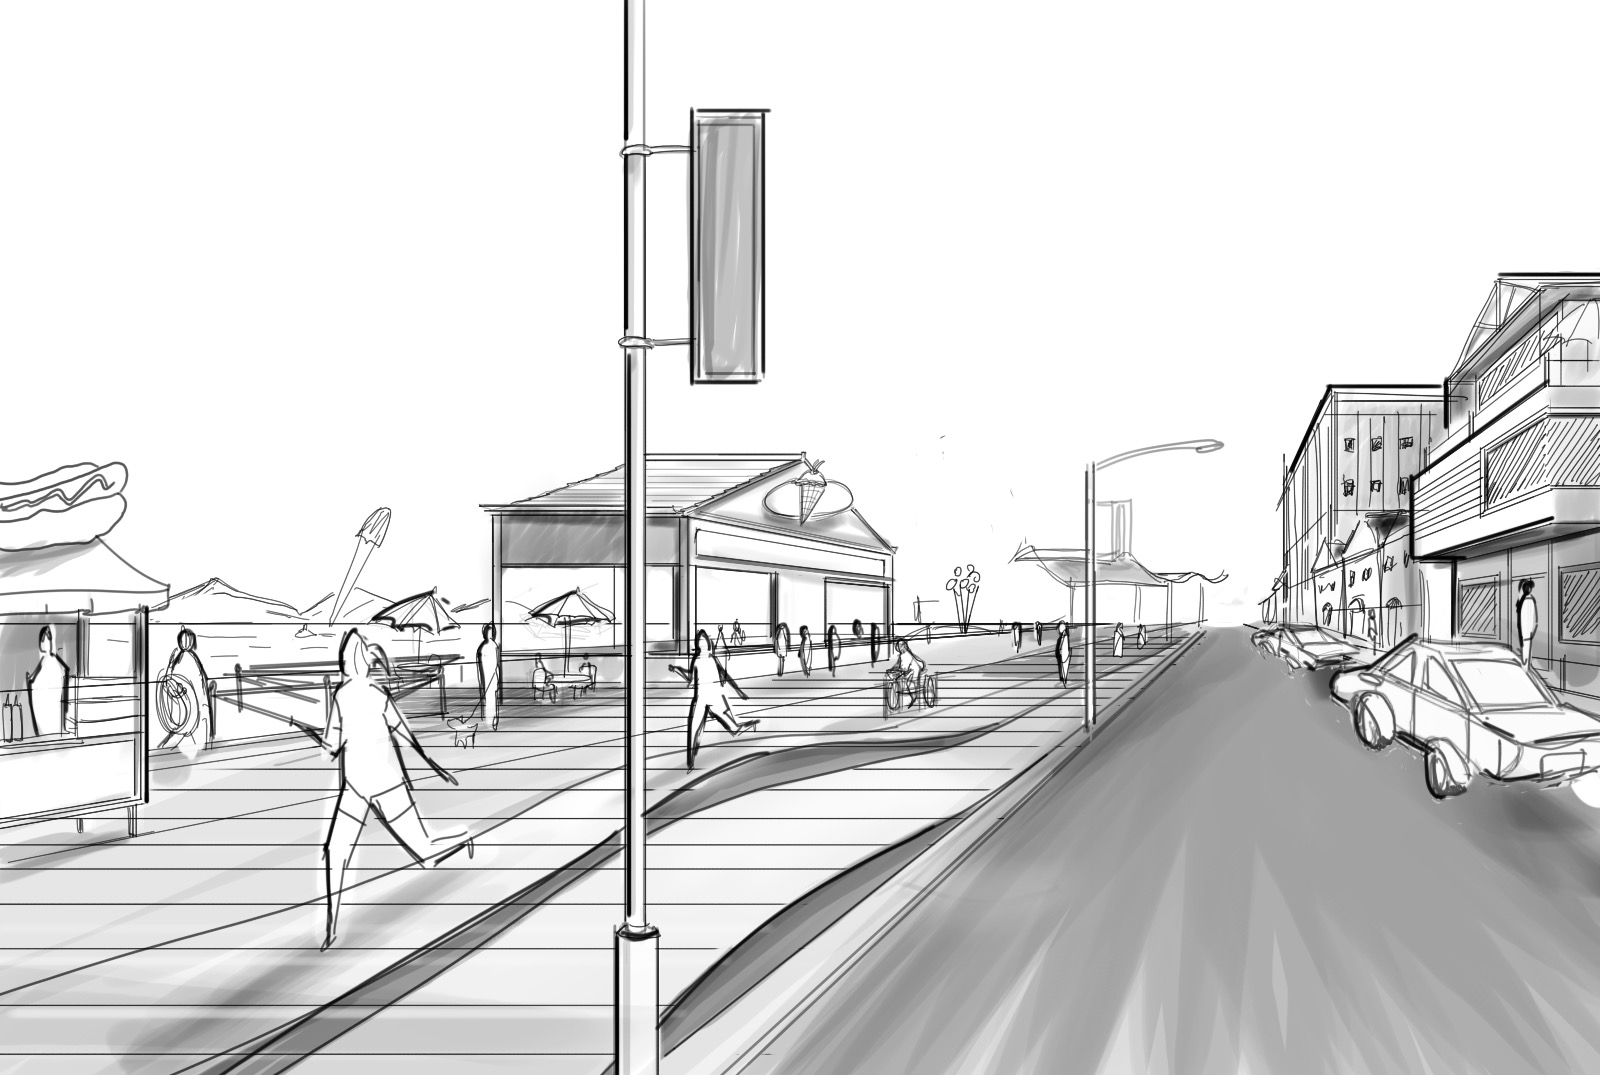 Drawn scenery street view Architectural to scene How Draw